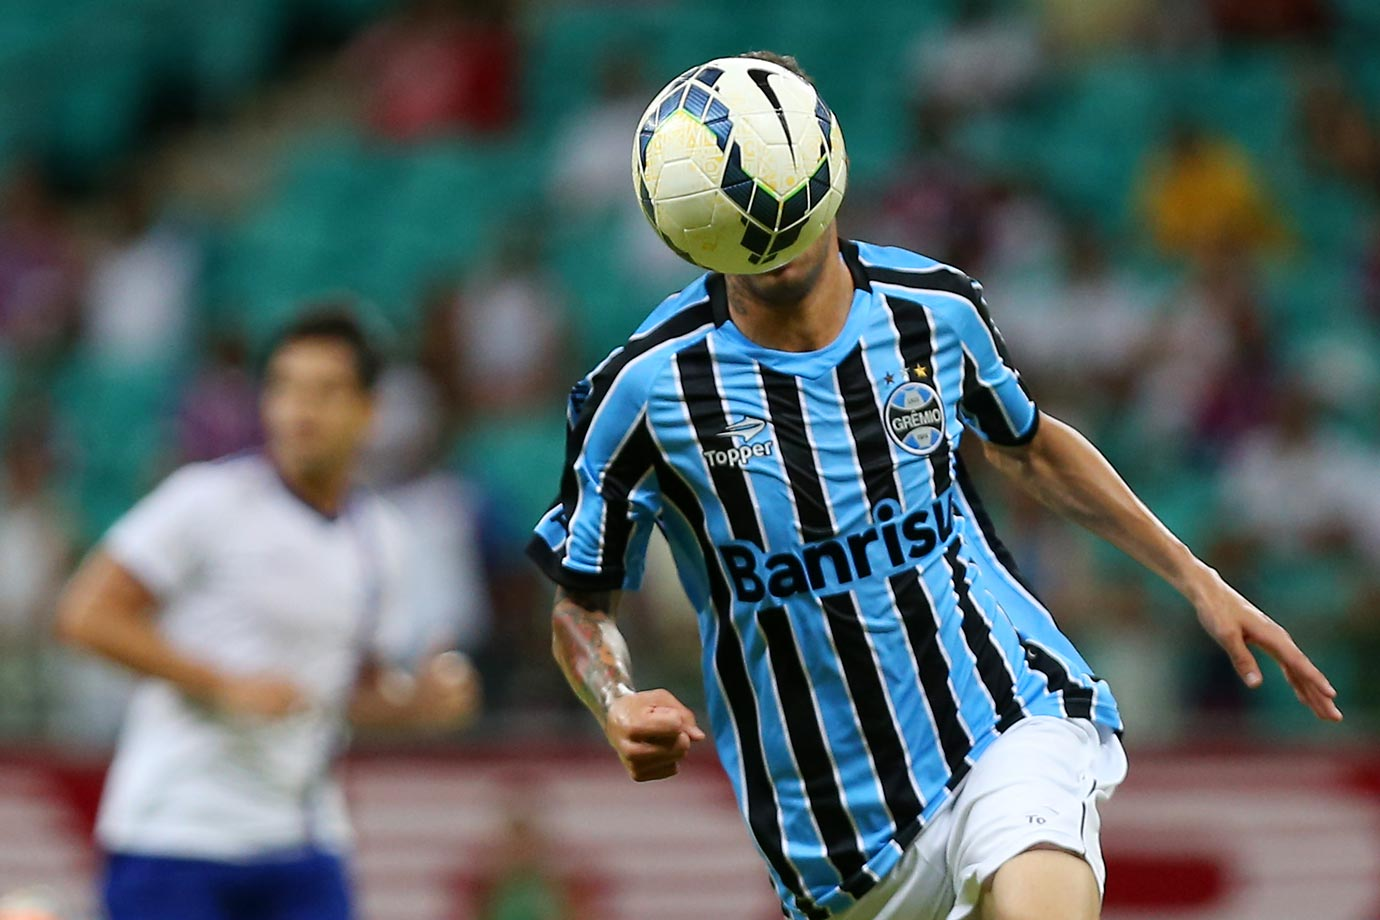 Luan of Gremio during the match between Bahia and Gremio.